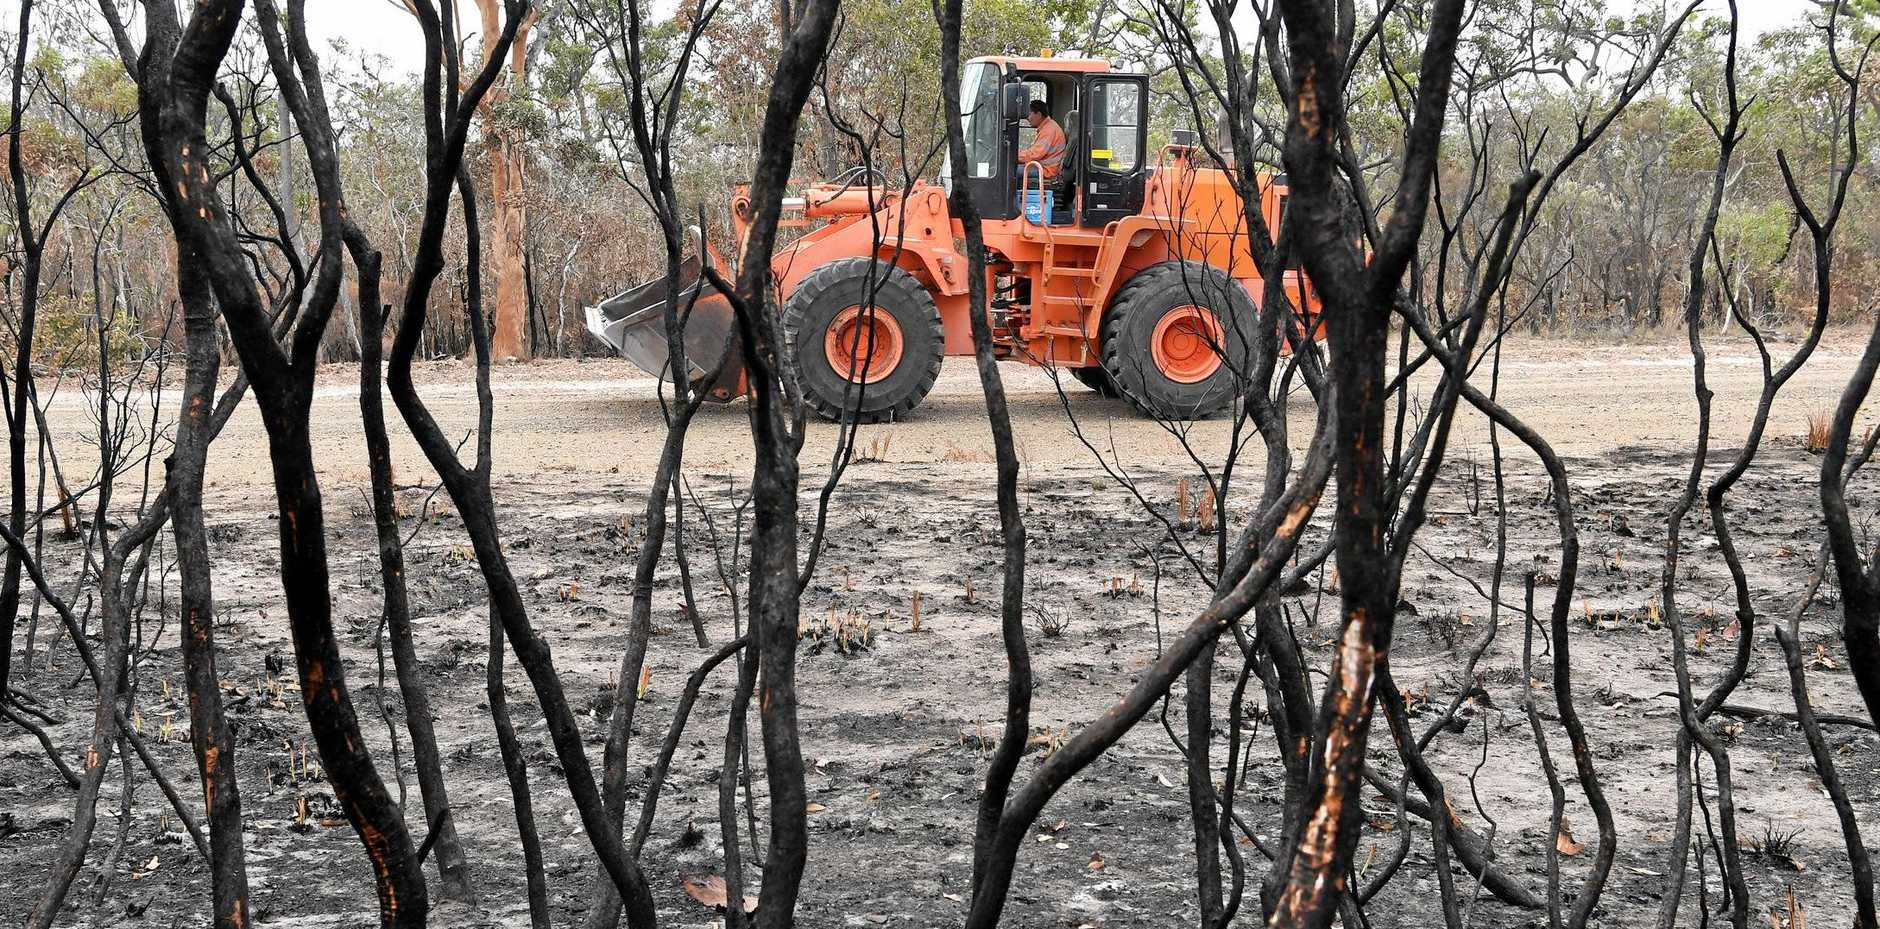 Earthmoving equipment in Deepwater after the fires swept through the region.